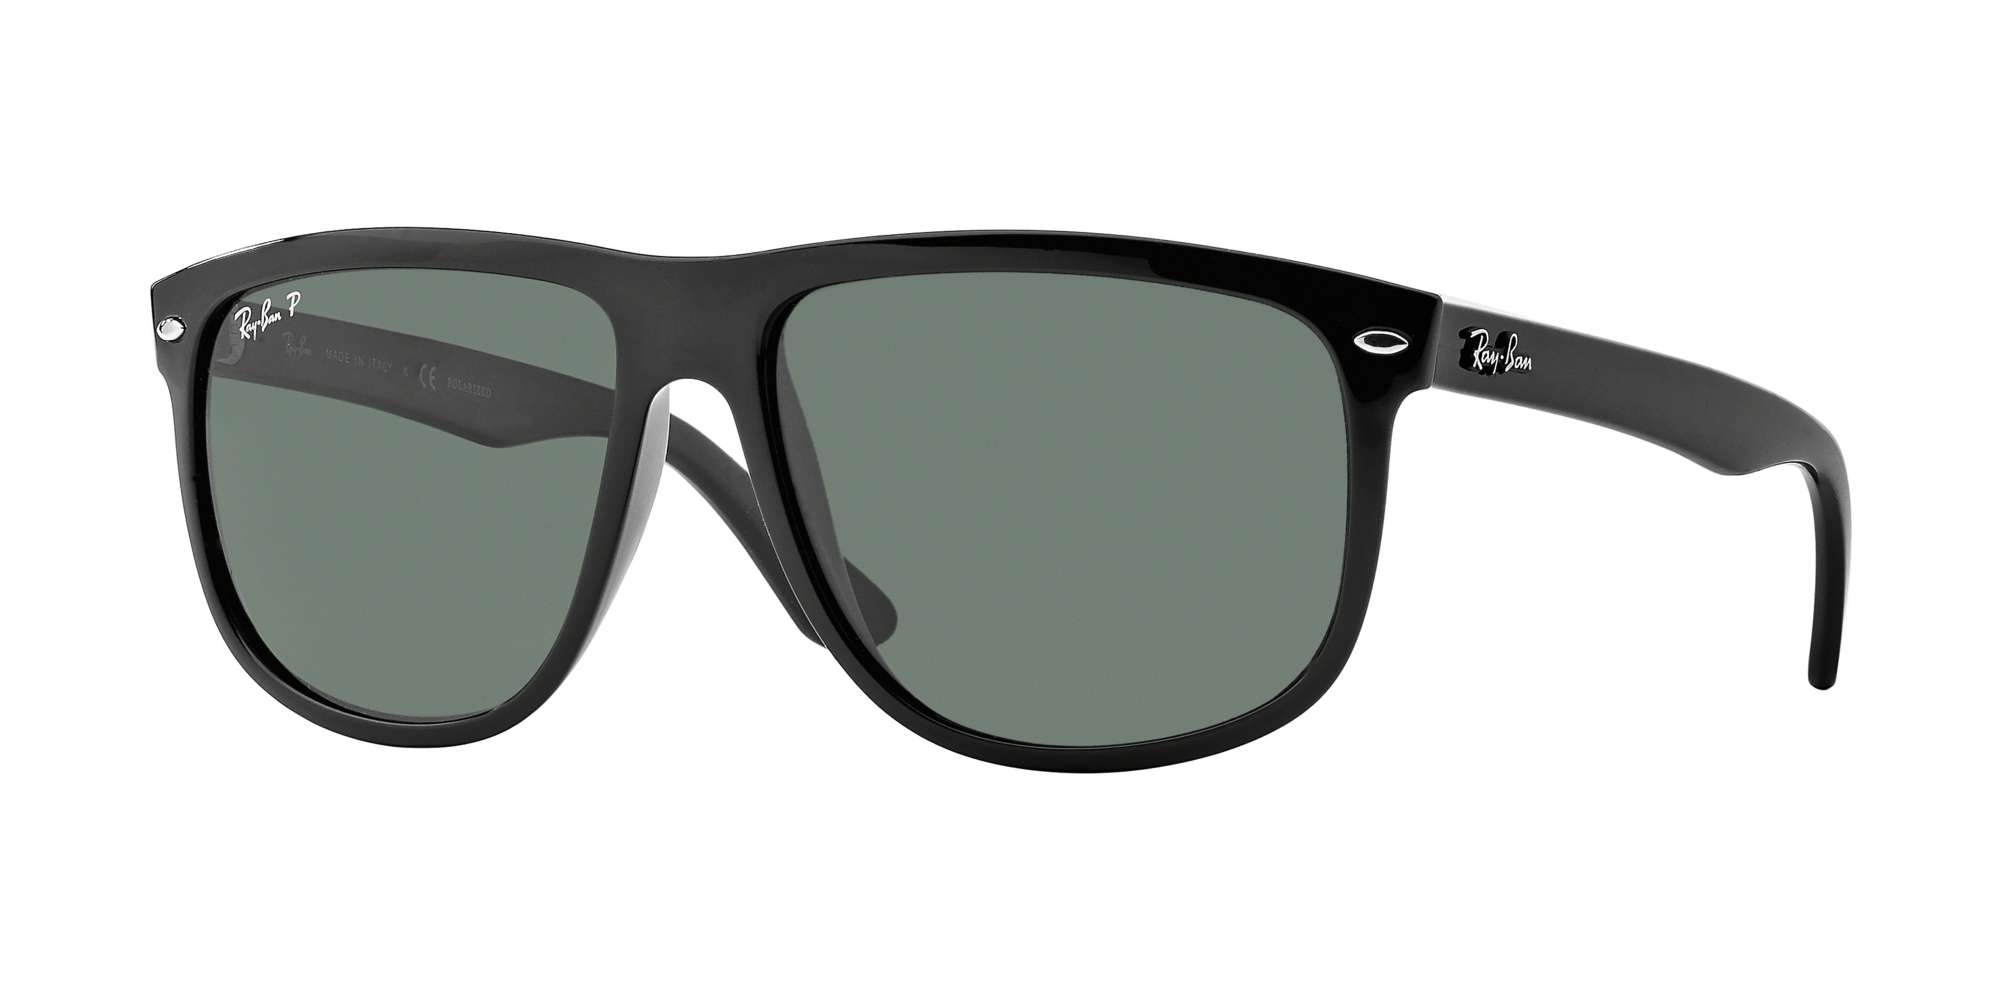 BLACK / GREEN POLARIZED lenses